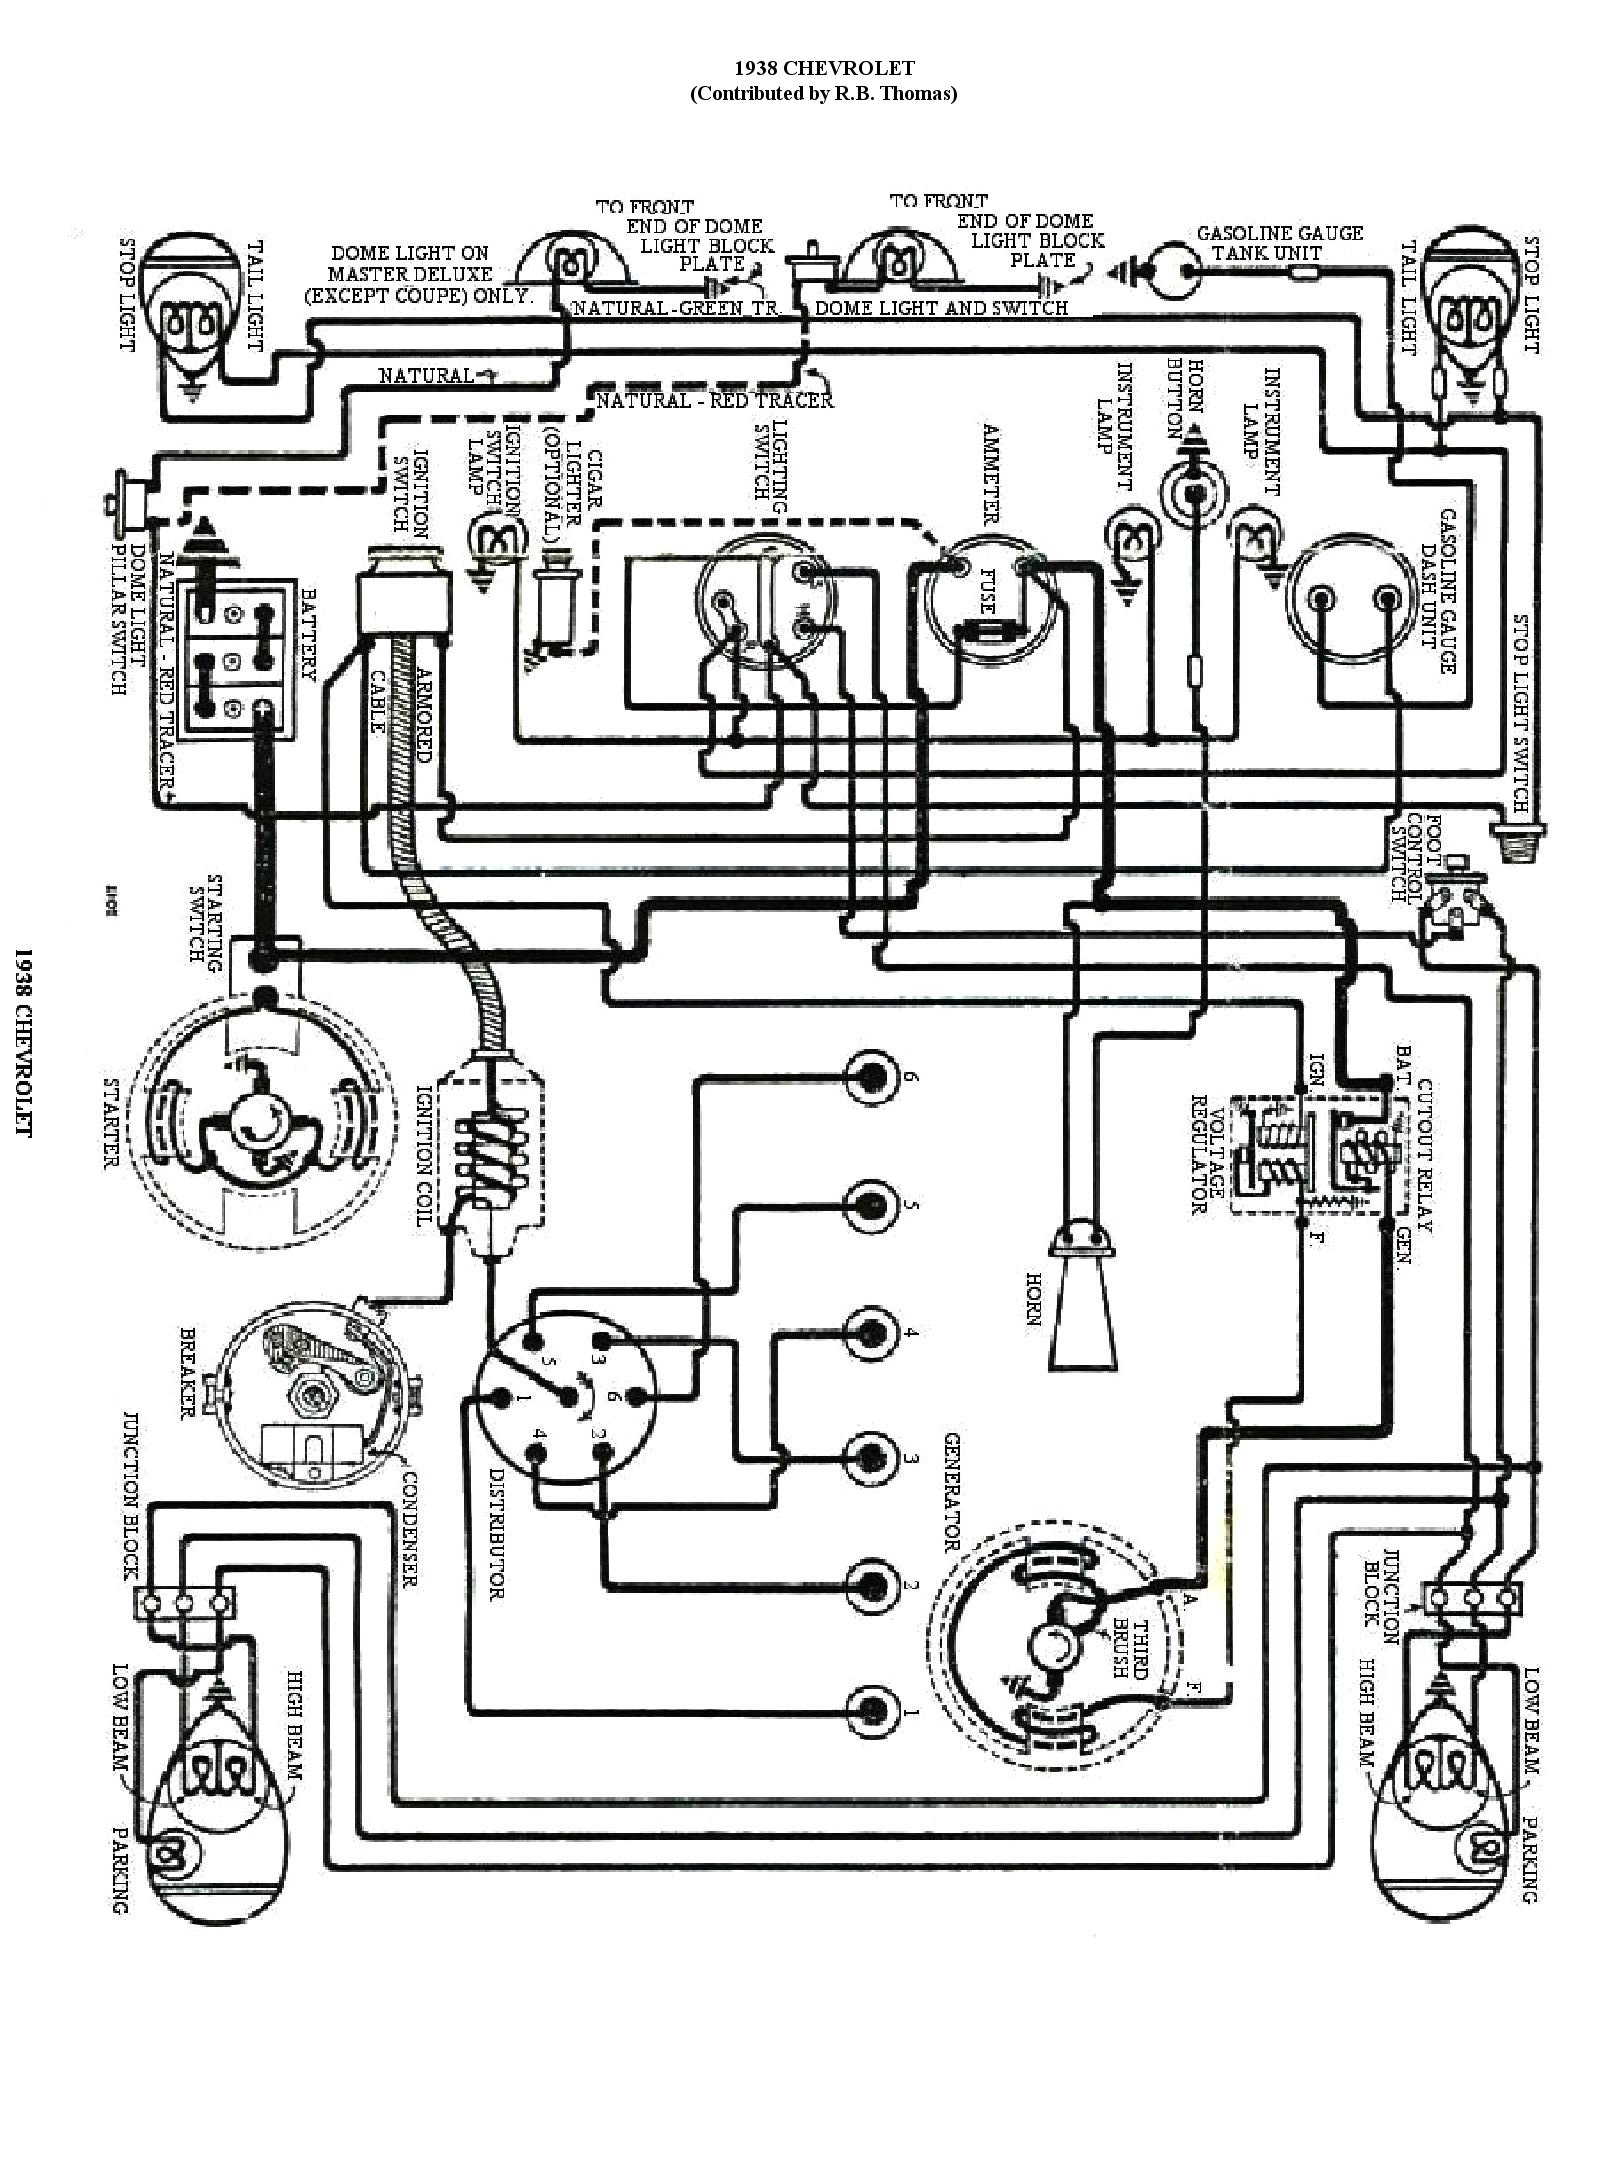 89 B2 Wiring Diagram